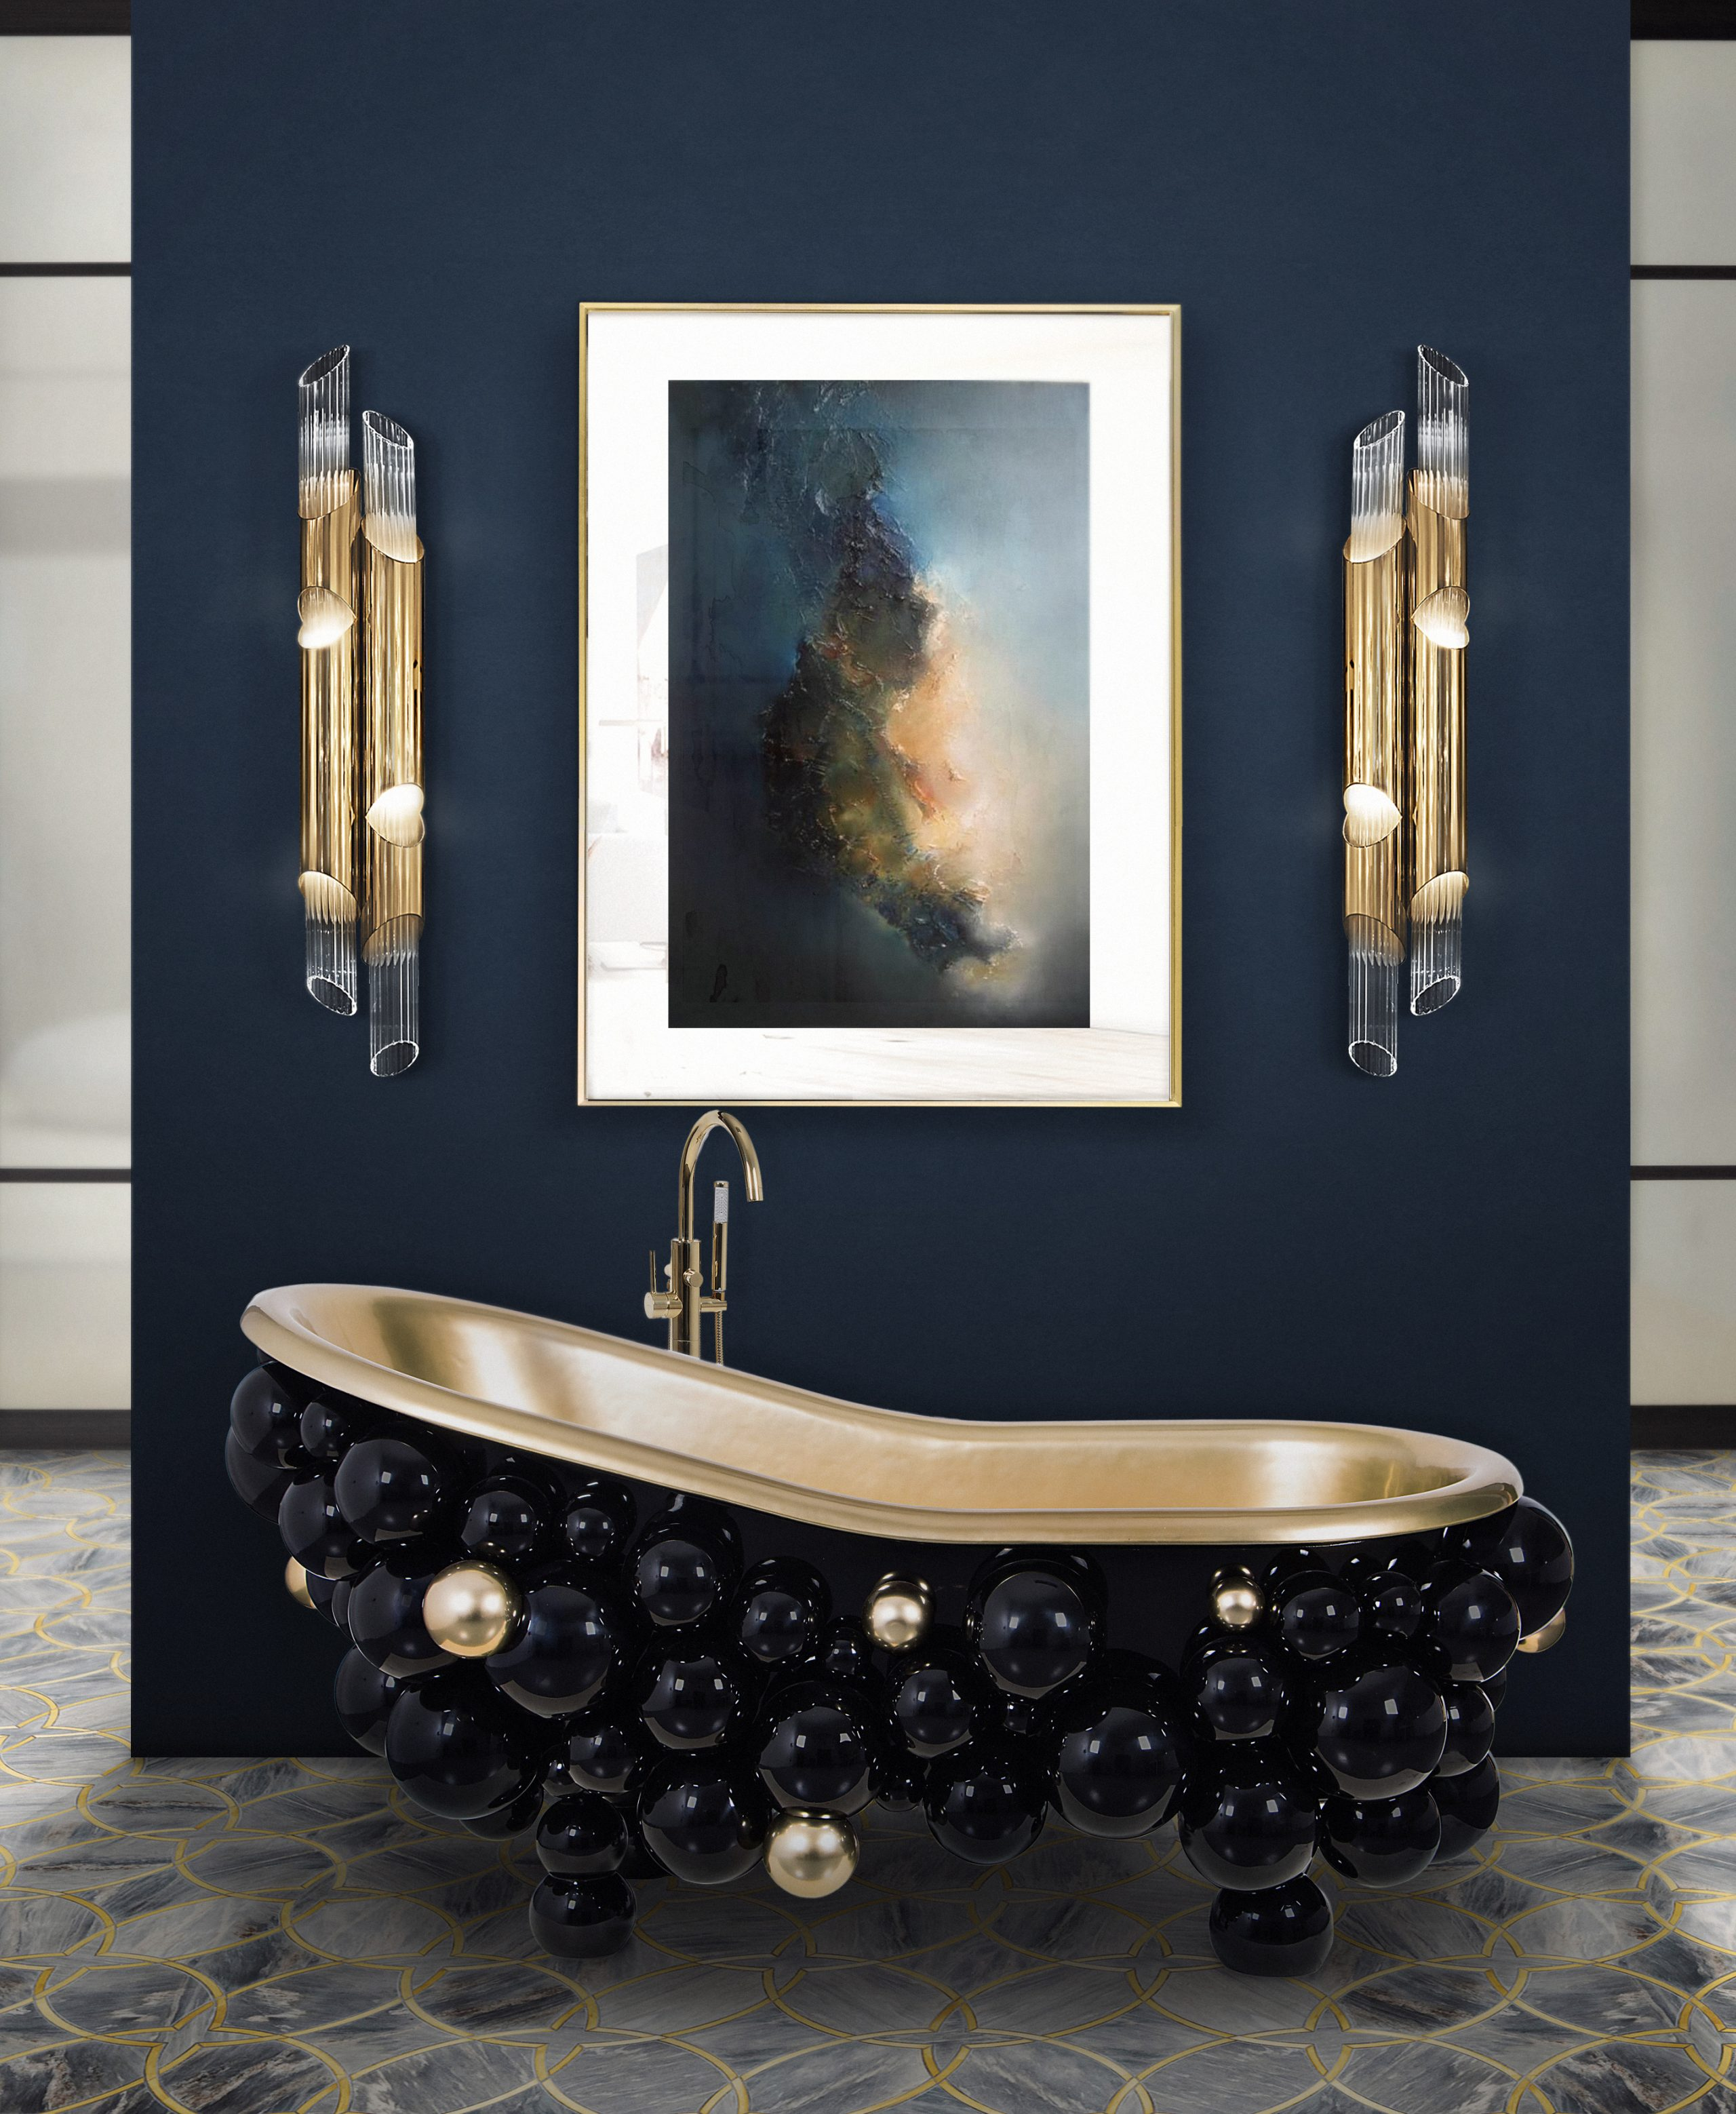 Marvel At Luxxu´s Excellence - Meet The Brand´s Best Sellers